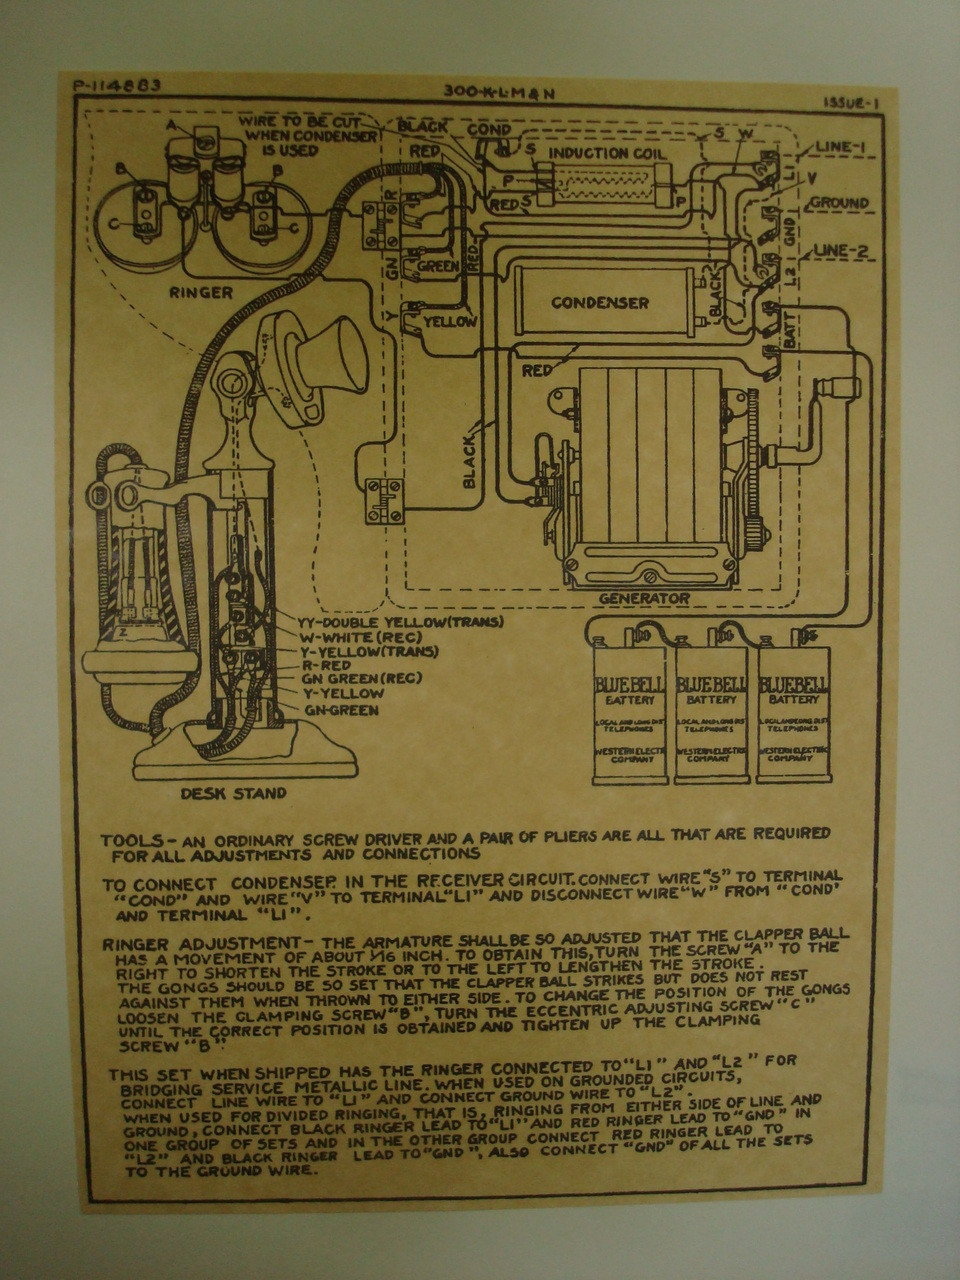 Western Electric Telephone Wiring Diagram - Year of Clean Water on